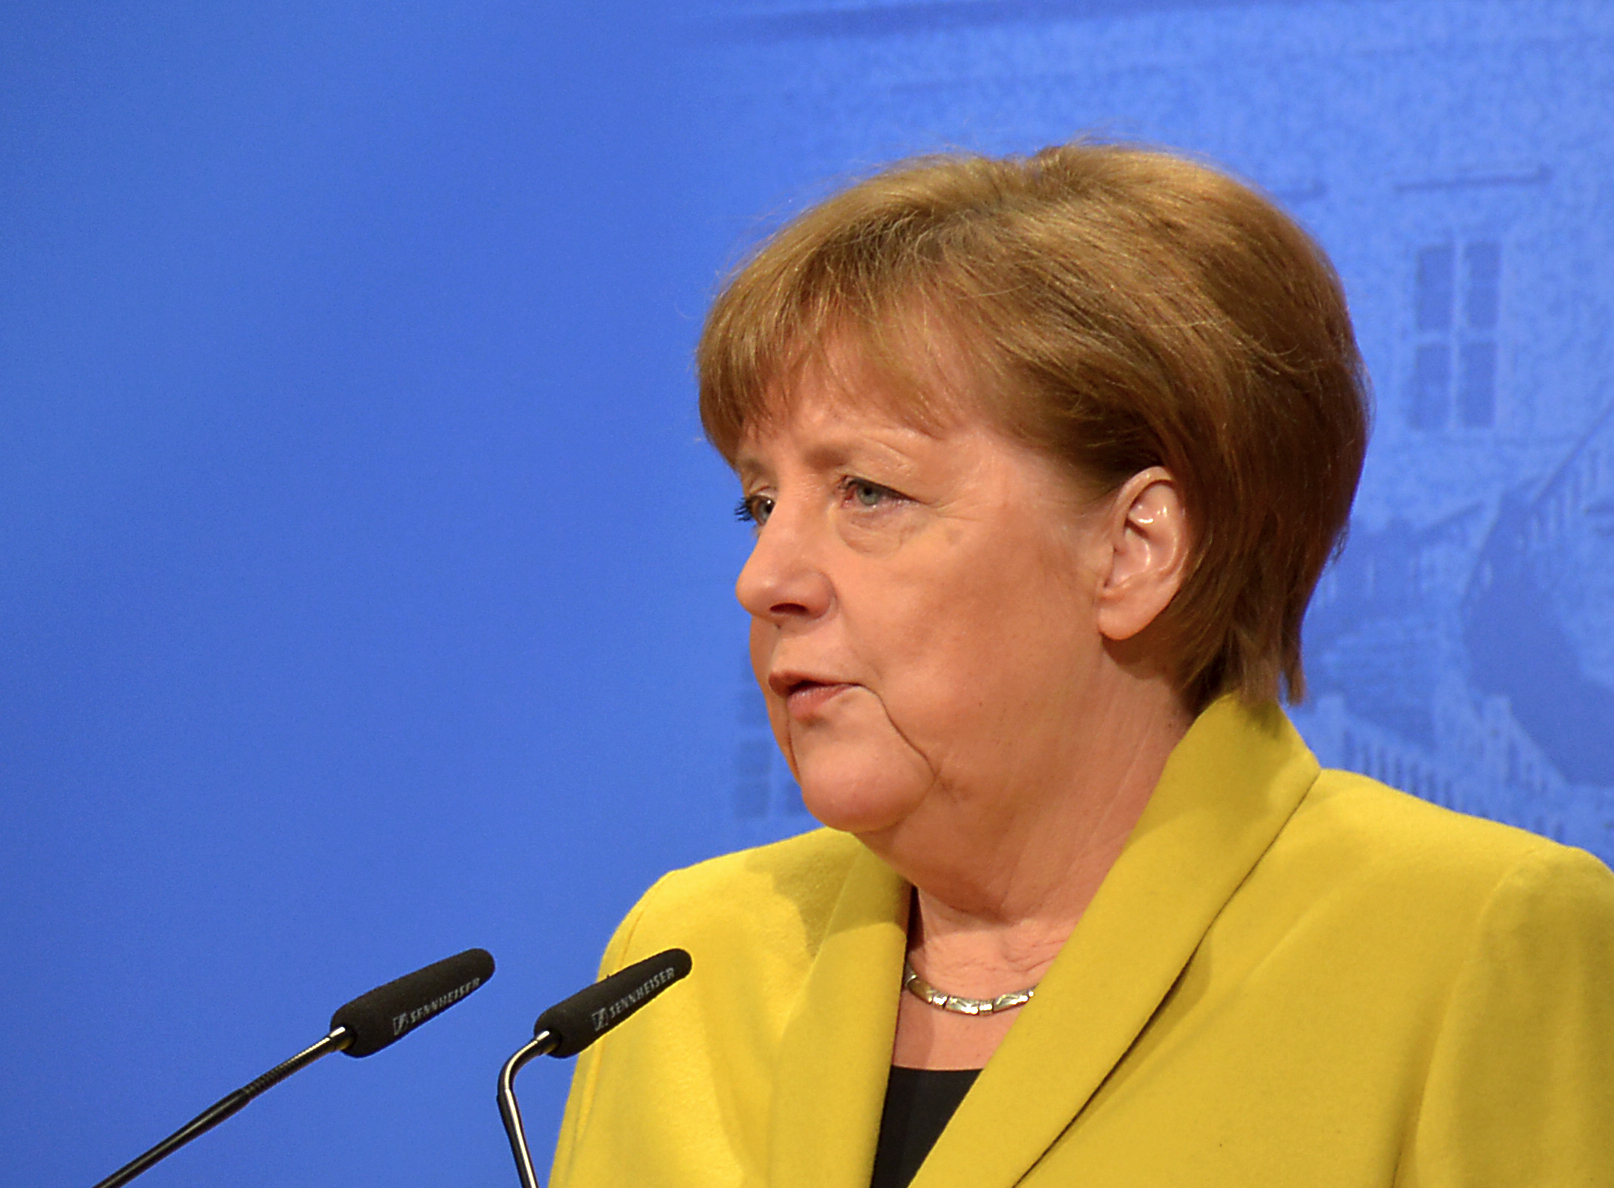 Angela Merkel By WDKrause (CC-BY-SA-4.0)